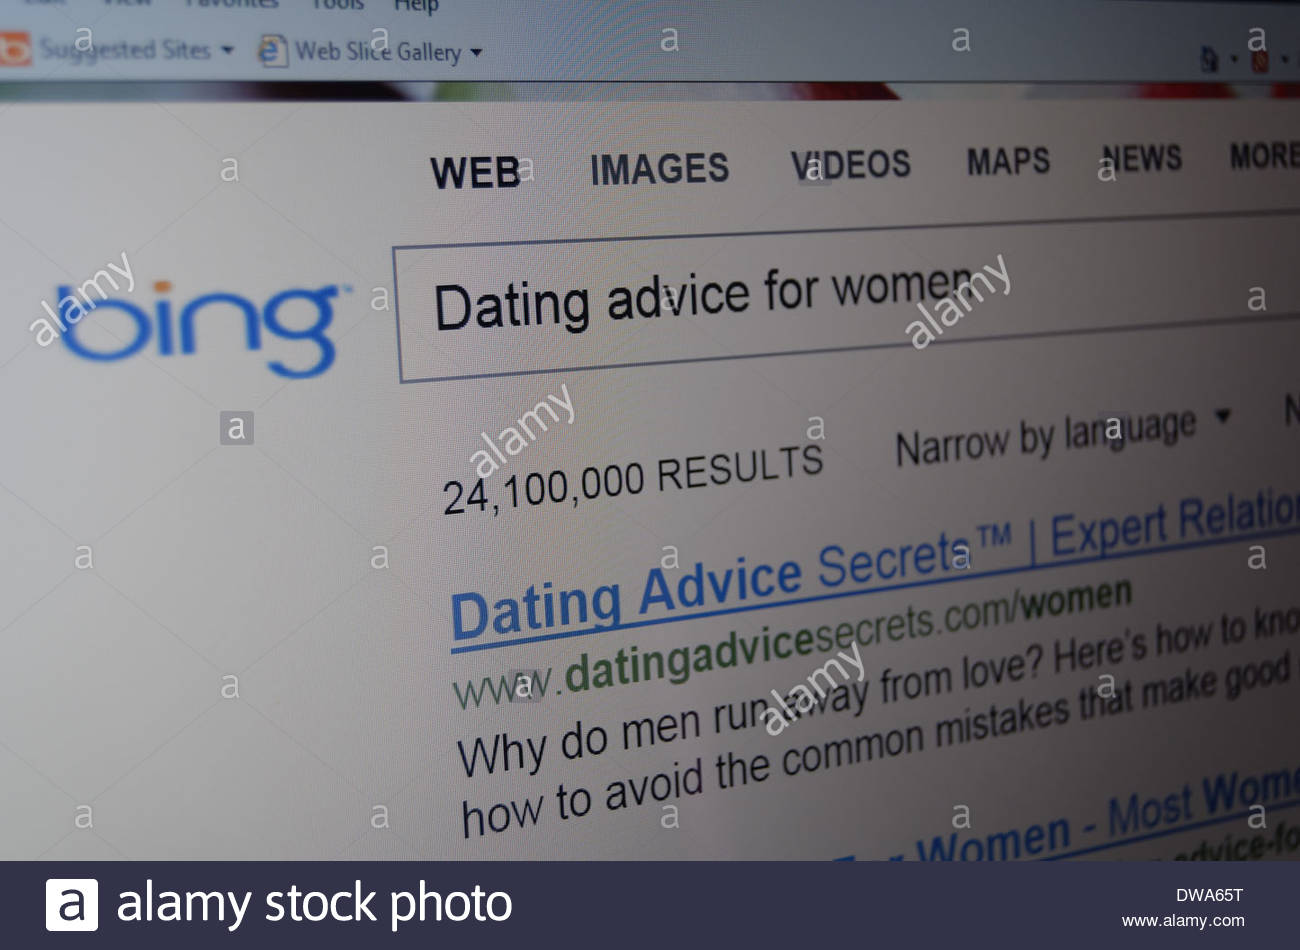 dating advice on the internet